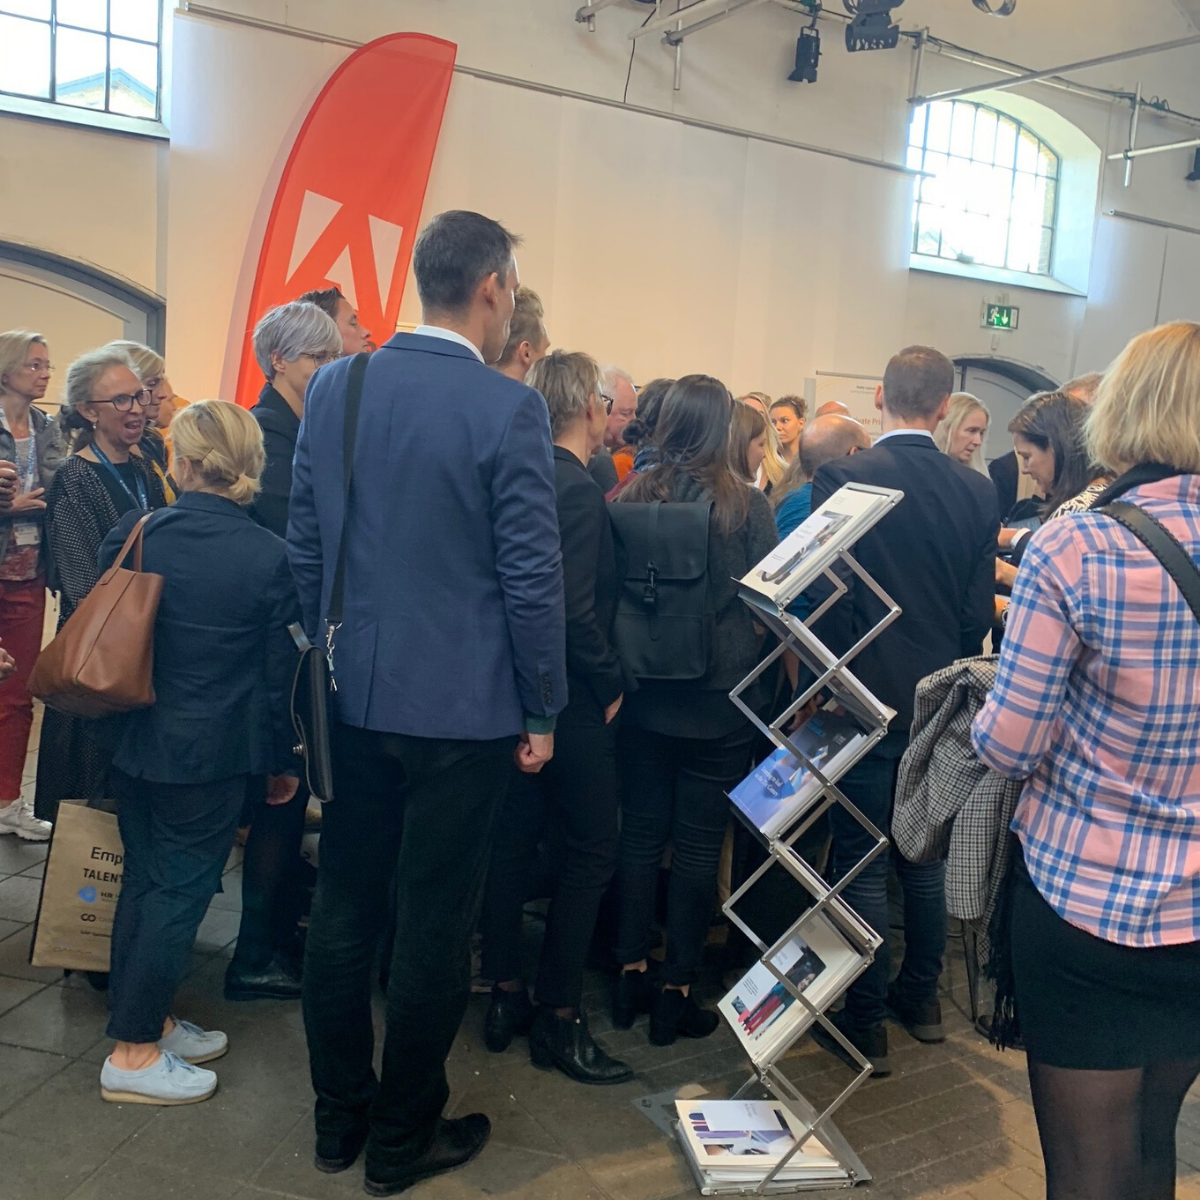 Queue for Paolo Gallo's book at Meeting Point HR in Copenhagen